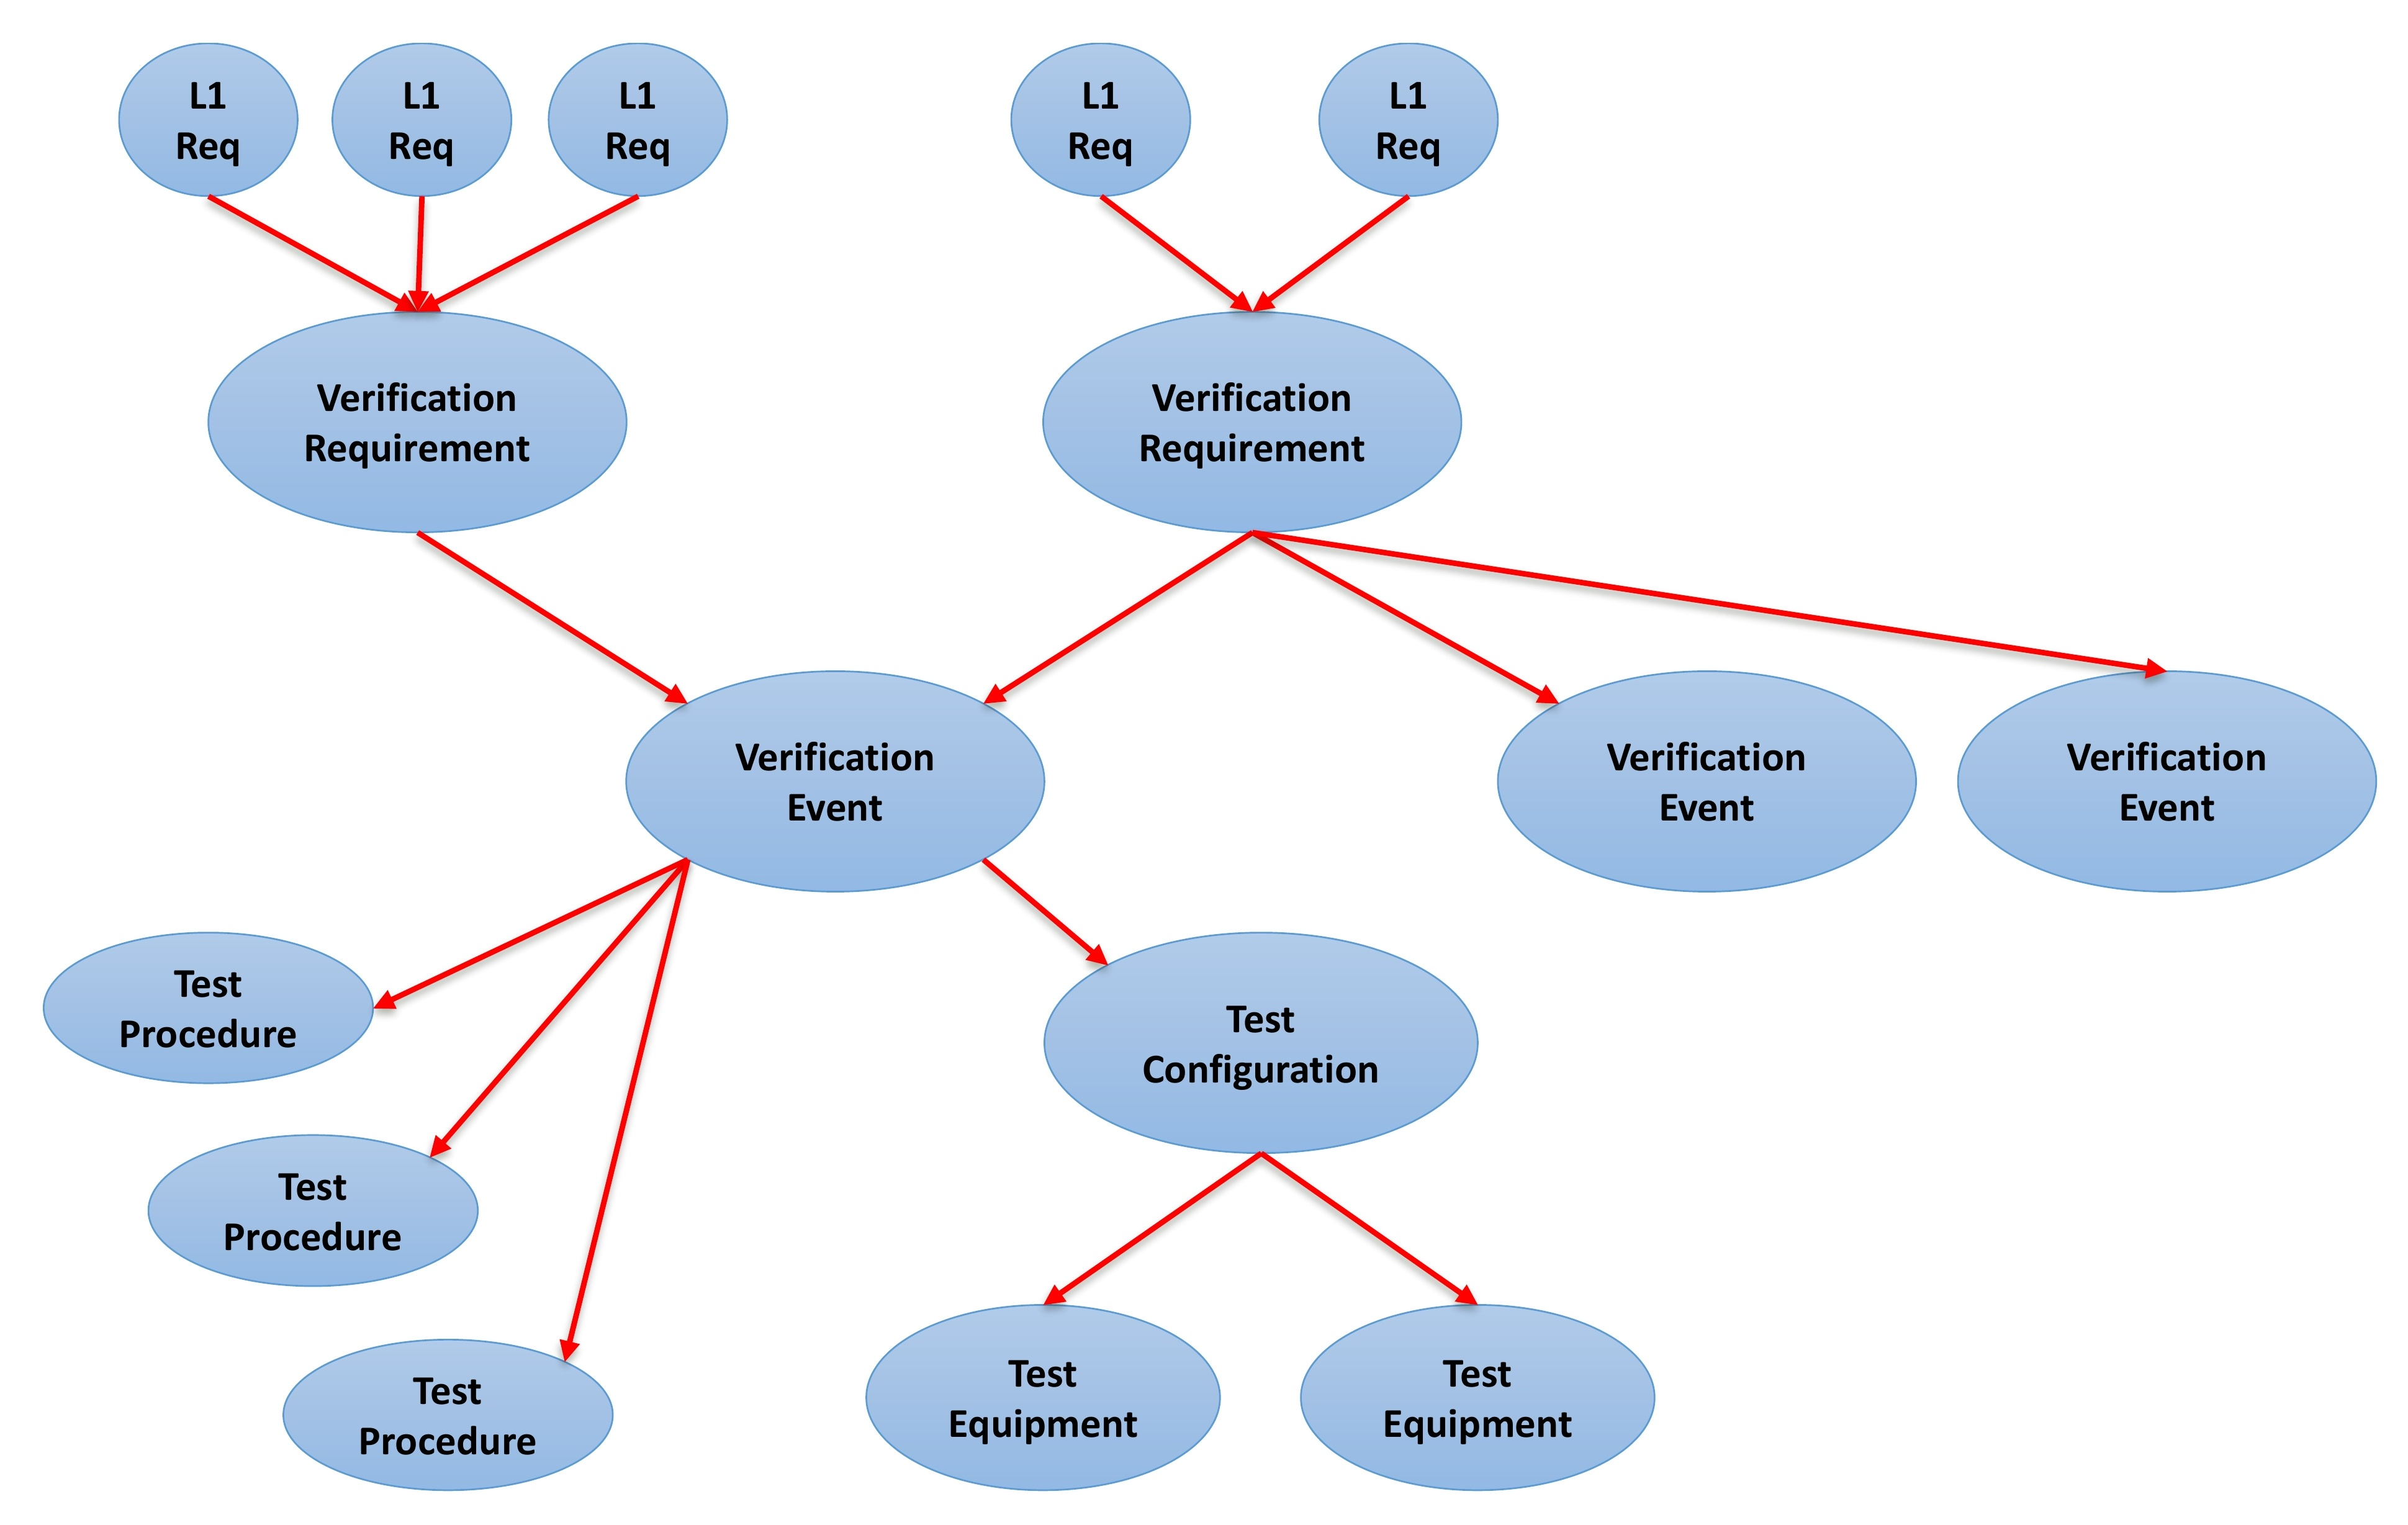 Figure 2 - Illustration of the relationships between elements of the Verification Model